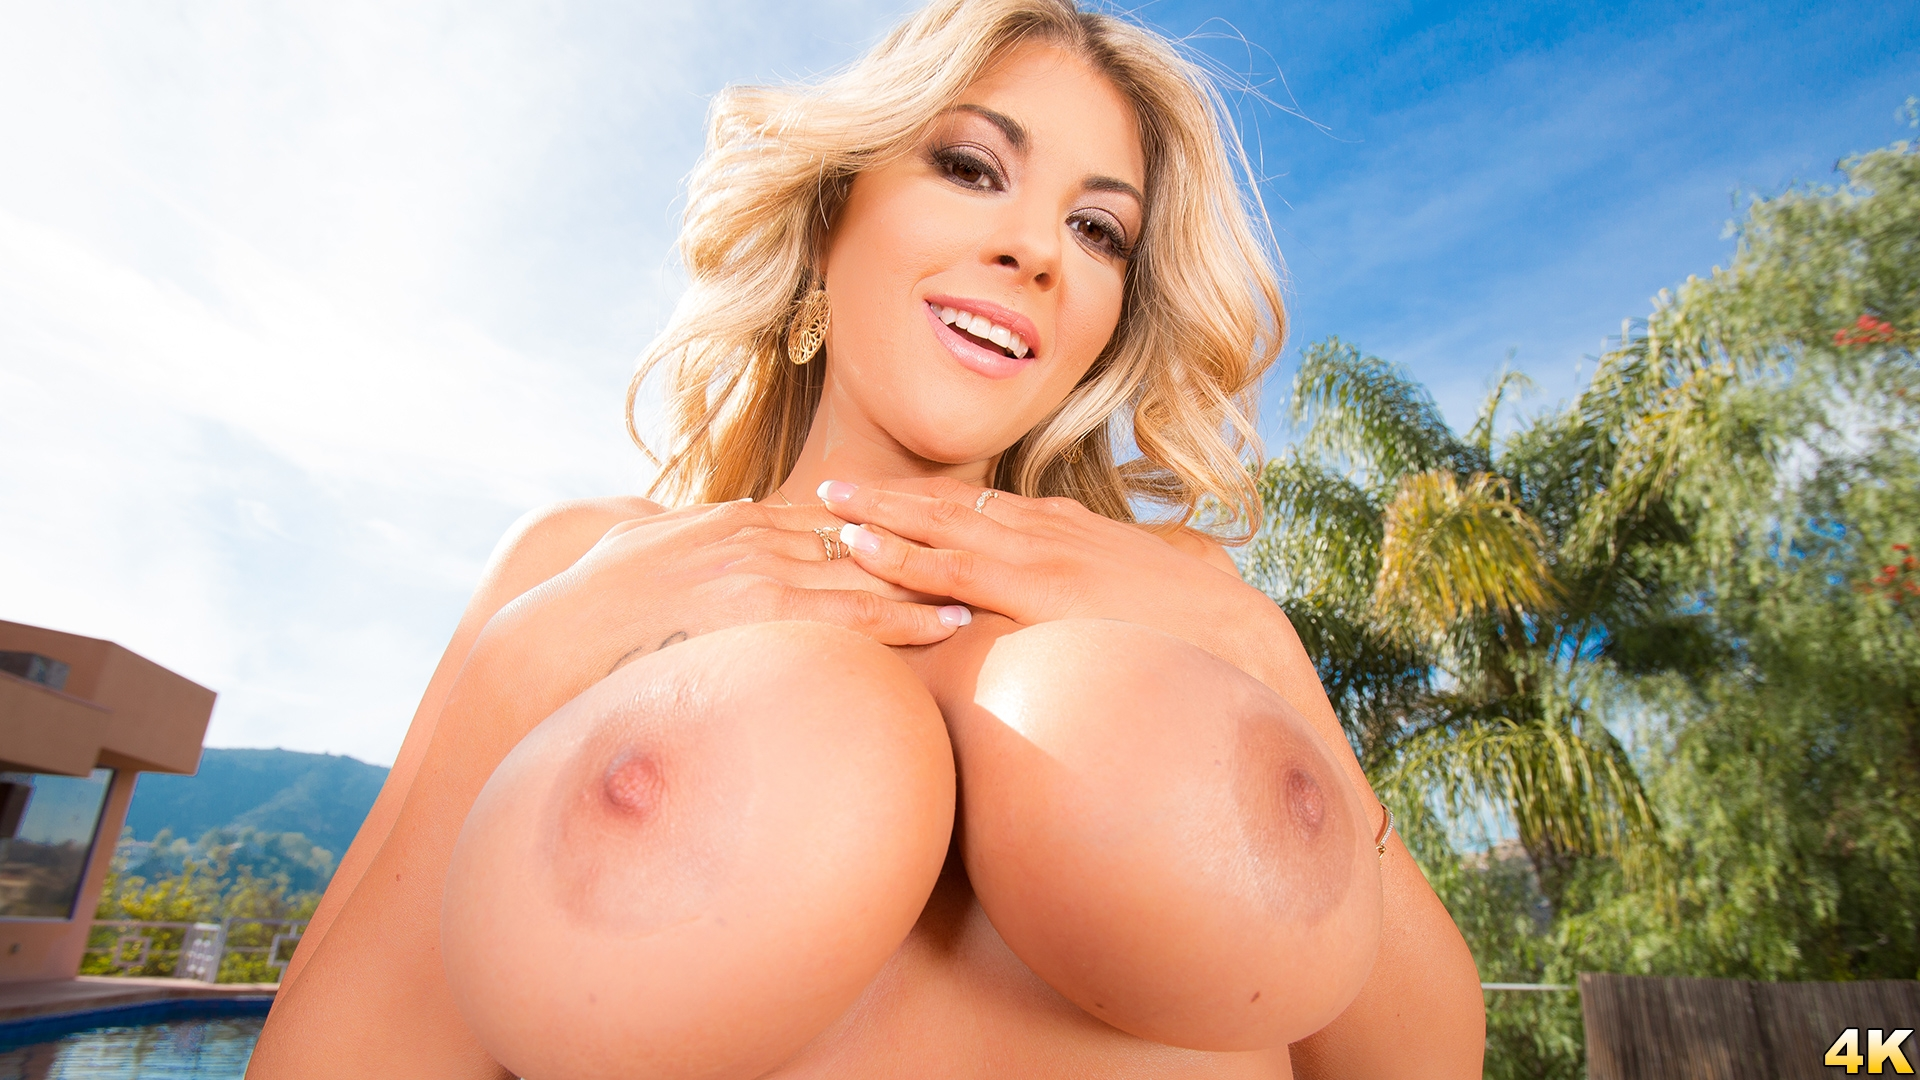 JulesJordan.com - Kayla Kayden's Big Tits Were Made For Fucking